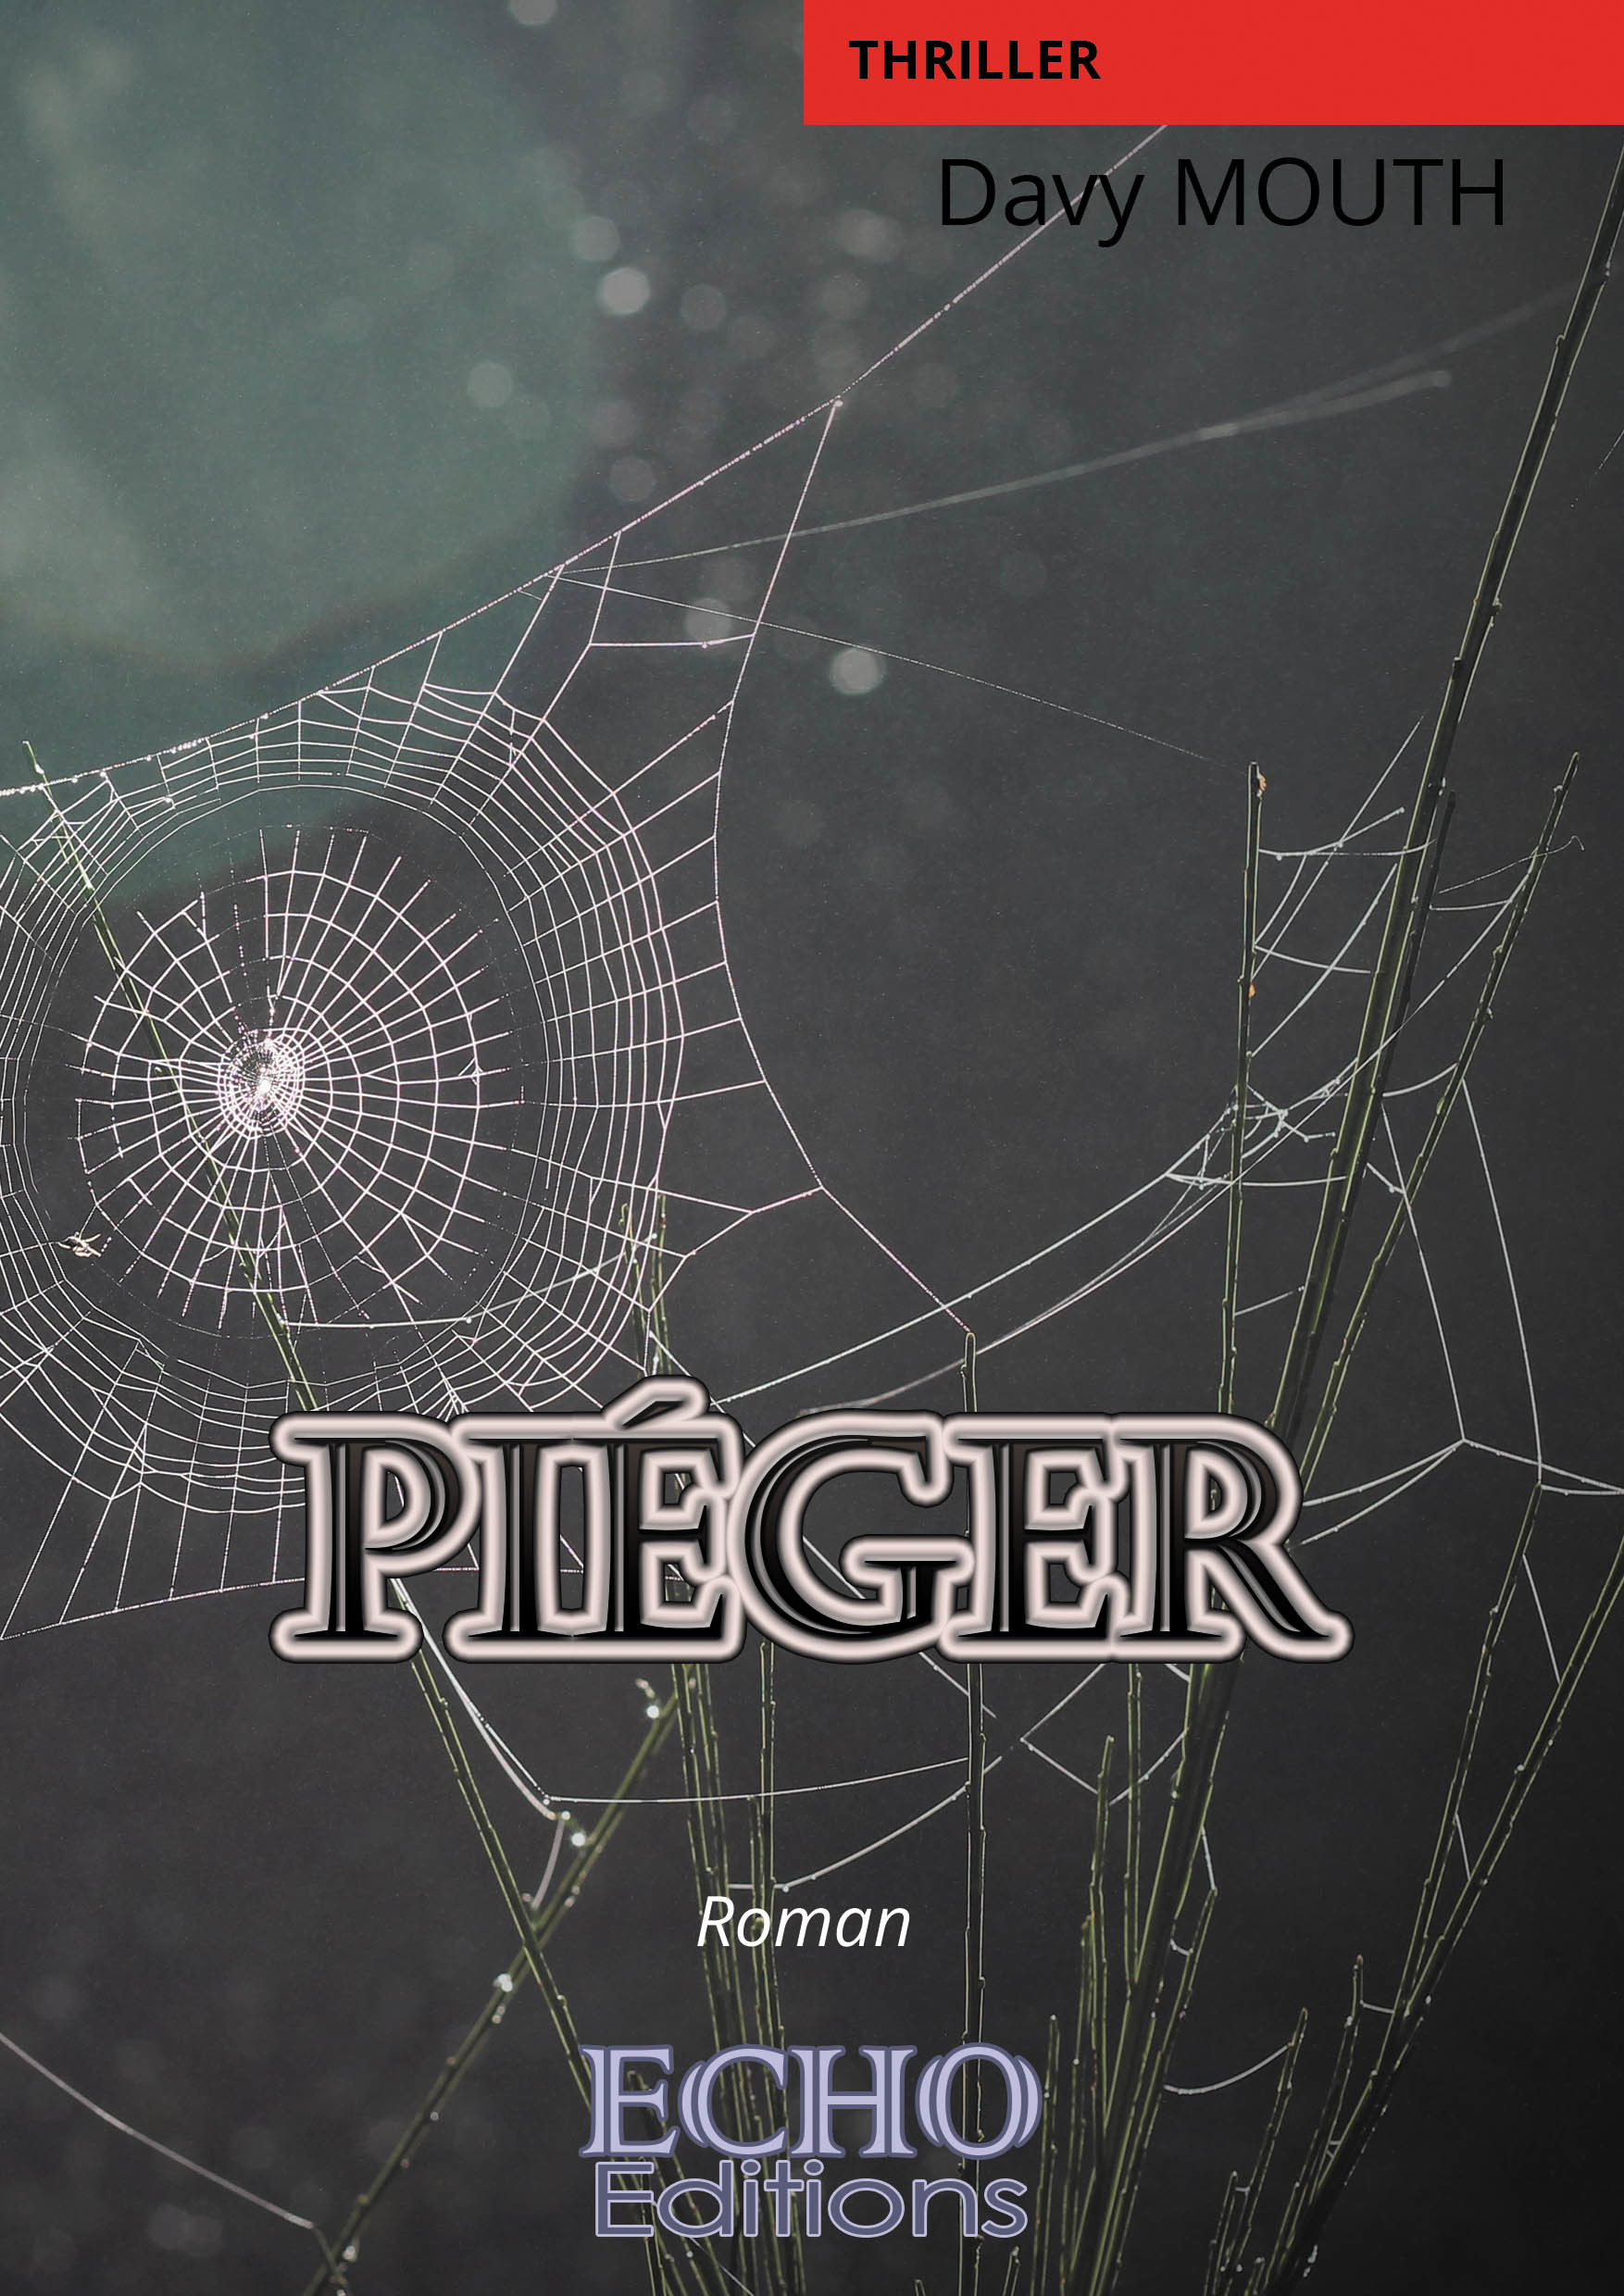 Piéger  - Davy Mouth